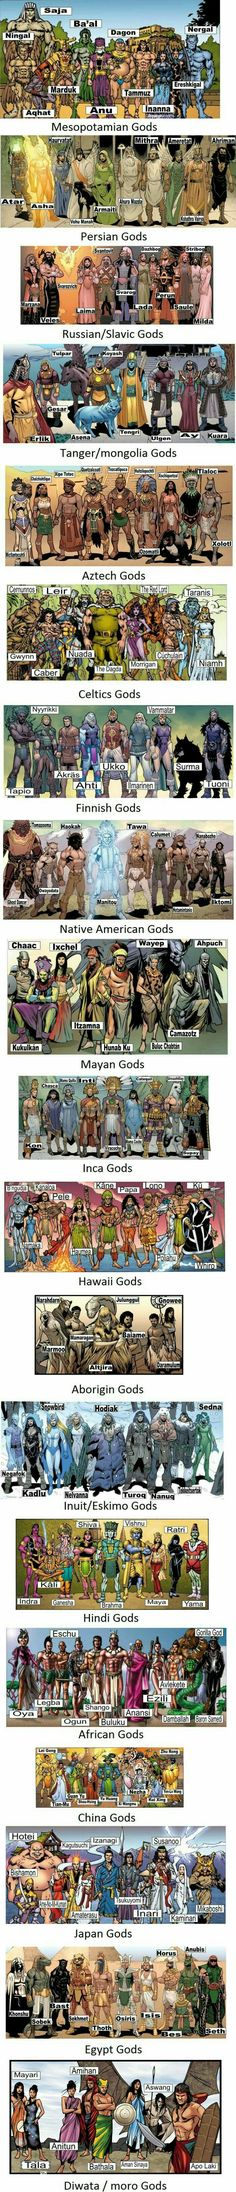 Only one Creator, The Most High. The rest is paganism/idol worship/satanism. Do your research.